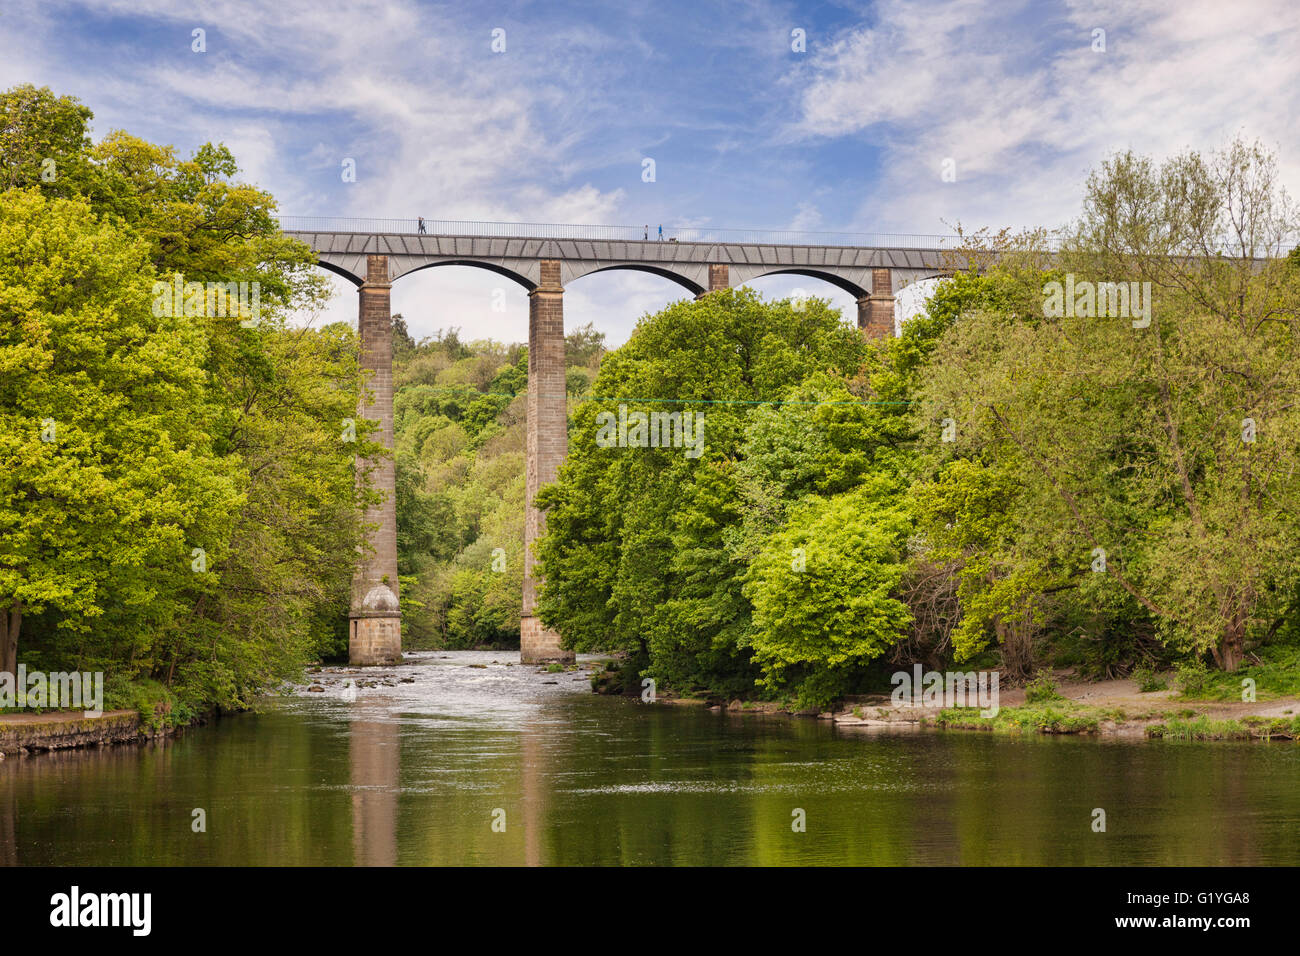 Pontcysyllte Aqueduct, built by Thomas Telford, and a World Heritage Site, reflecting in the River Dee, with people Stock Photo